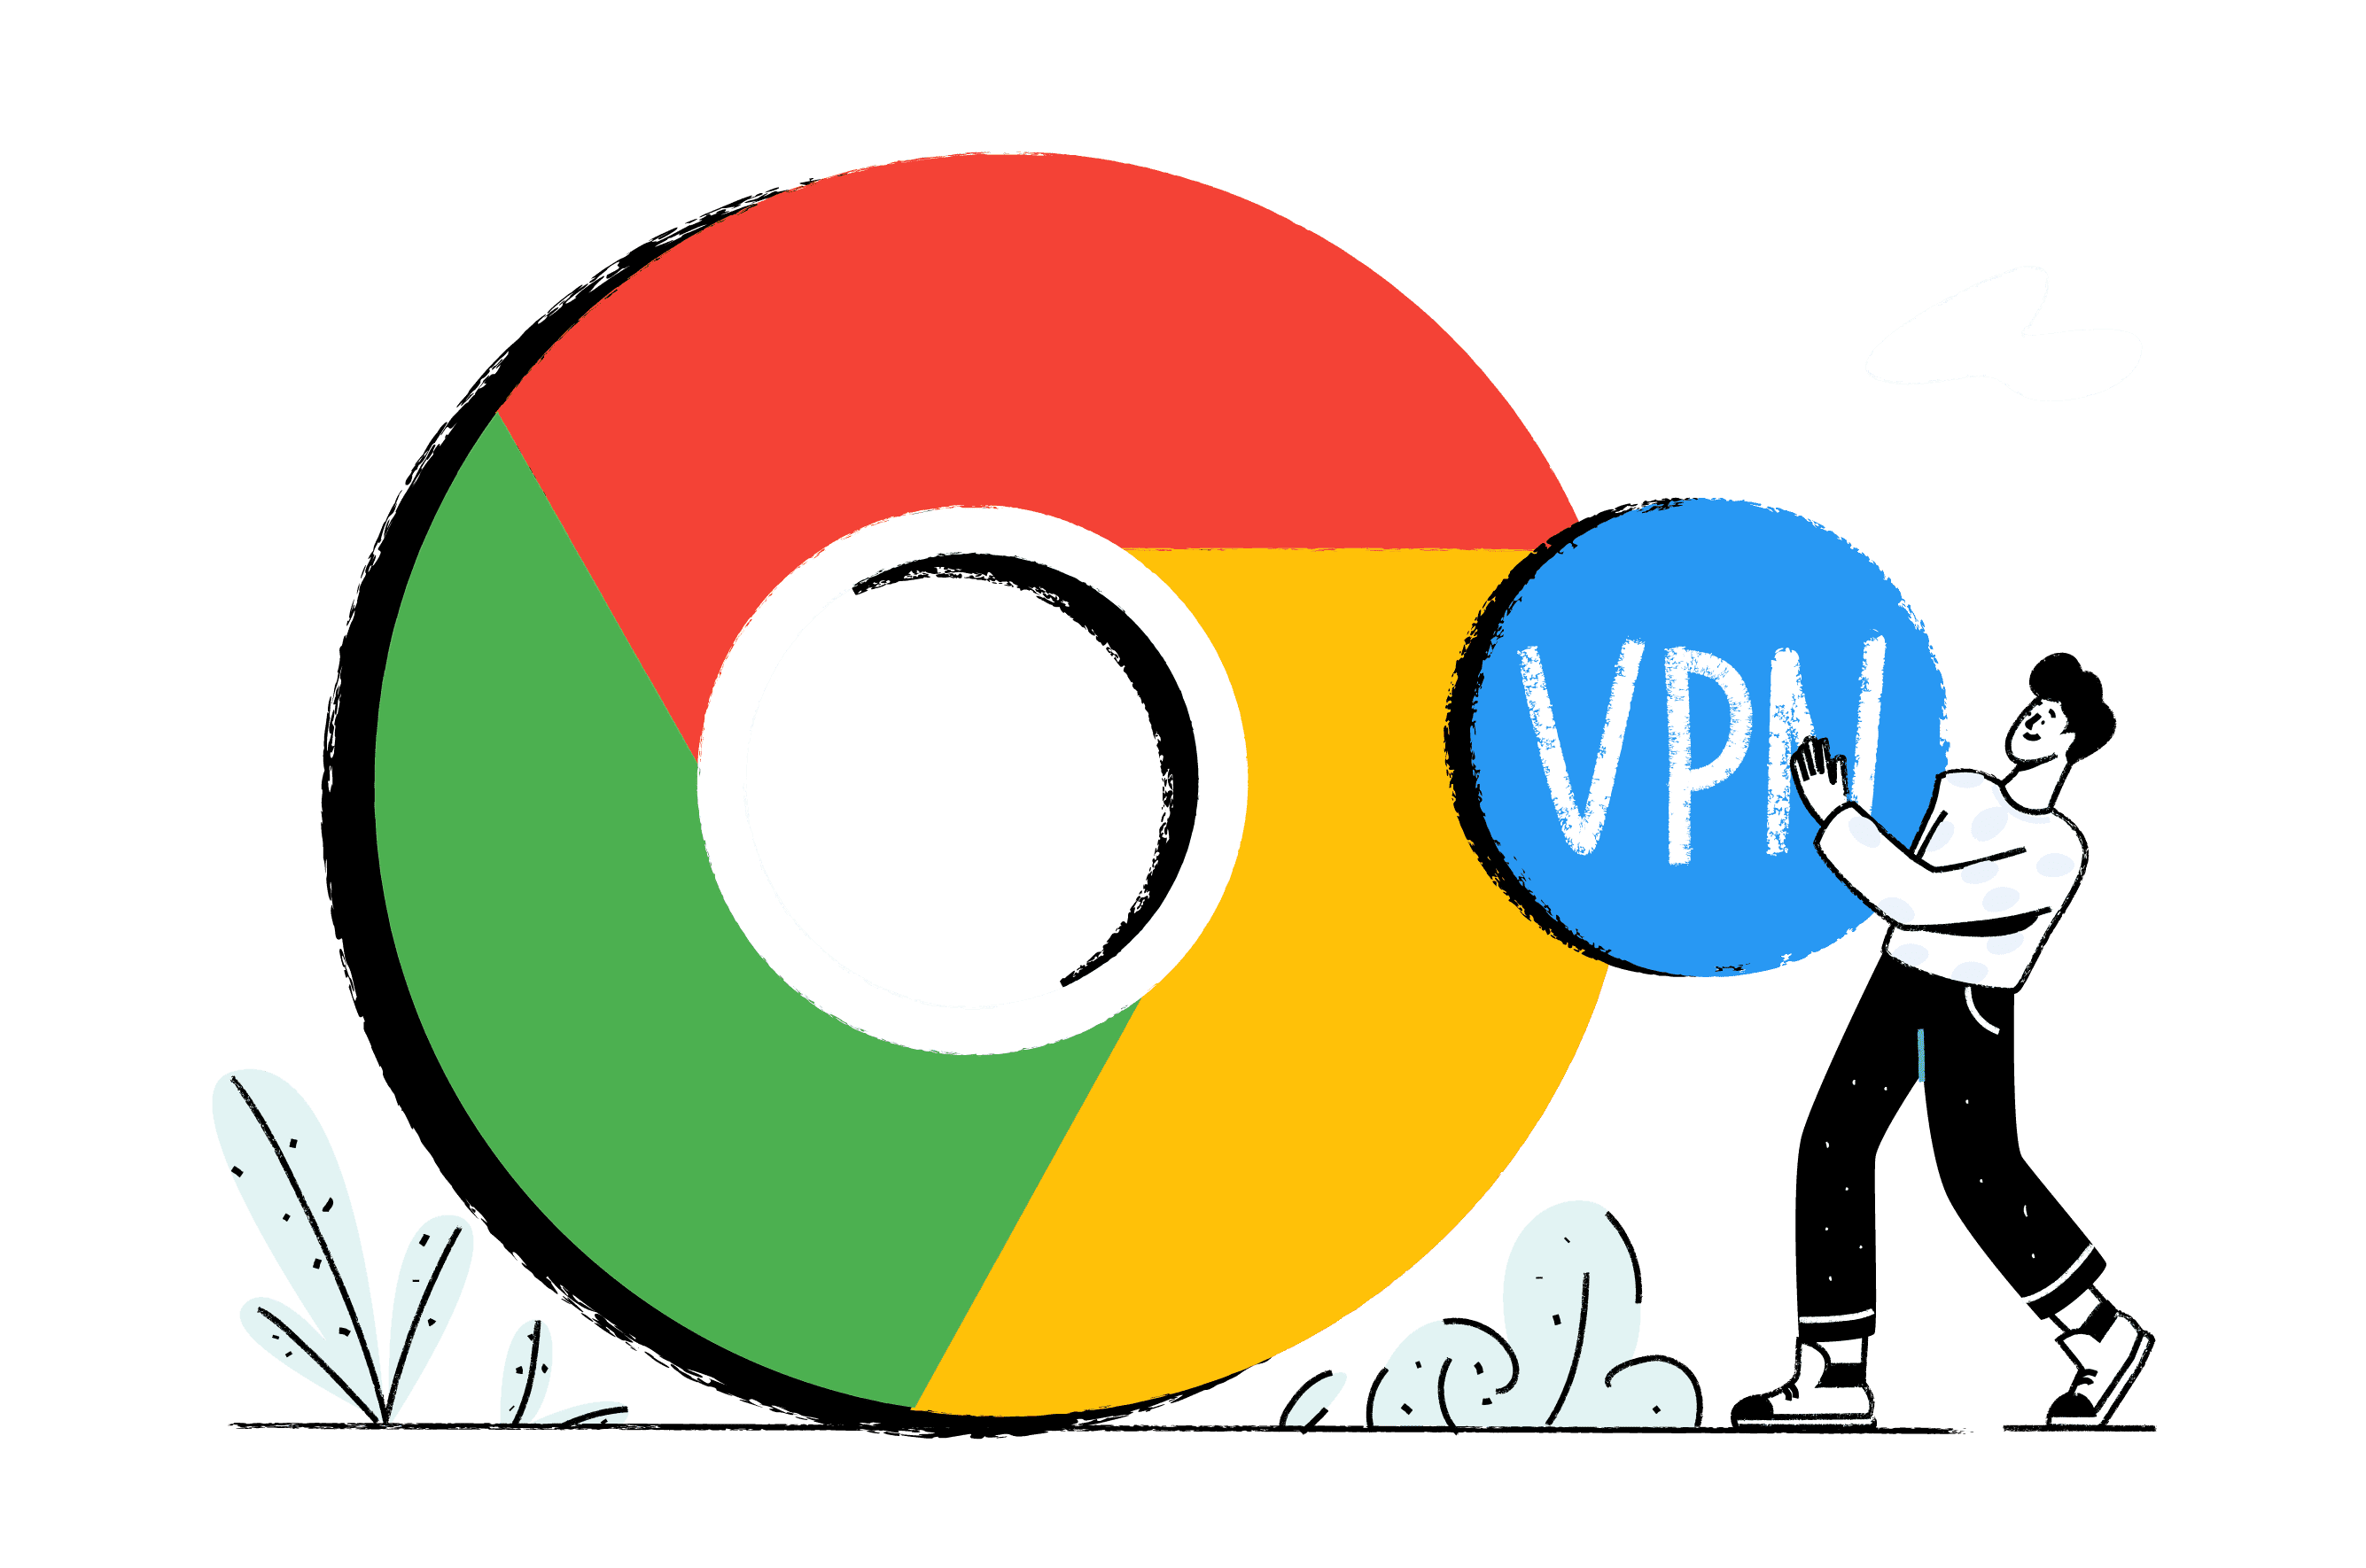 Illustration of Chrome logo with a man placing a VPN in the center of it